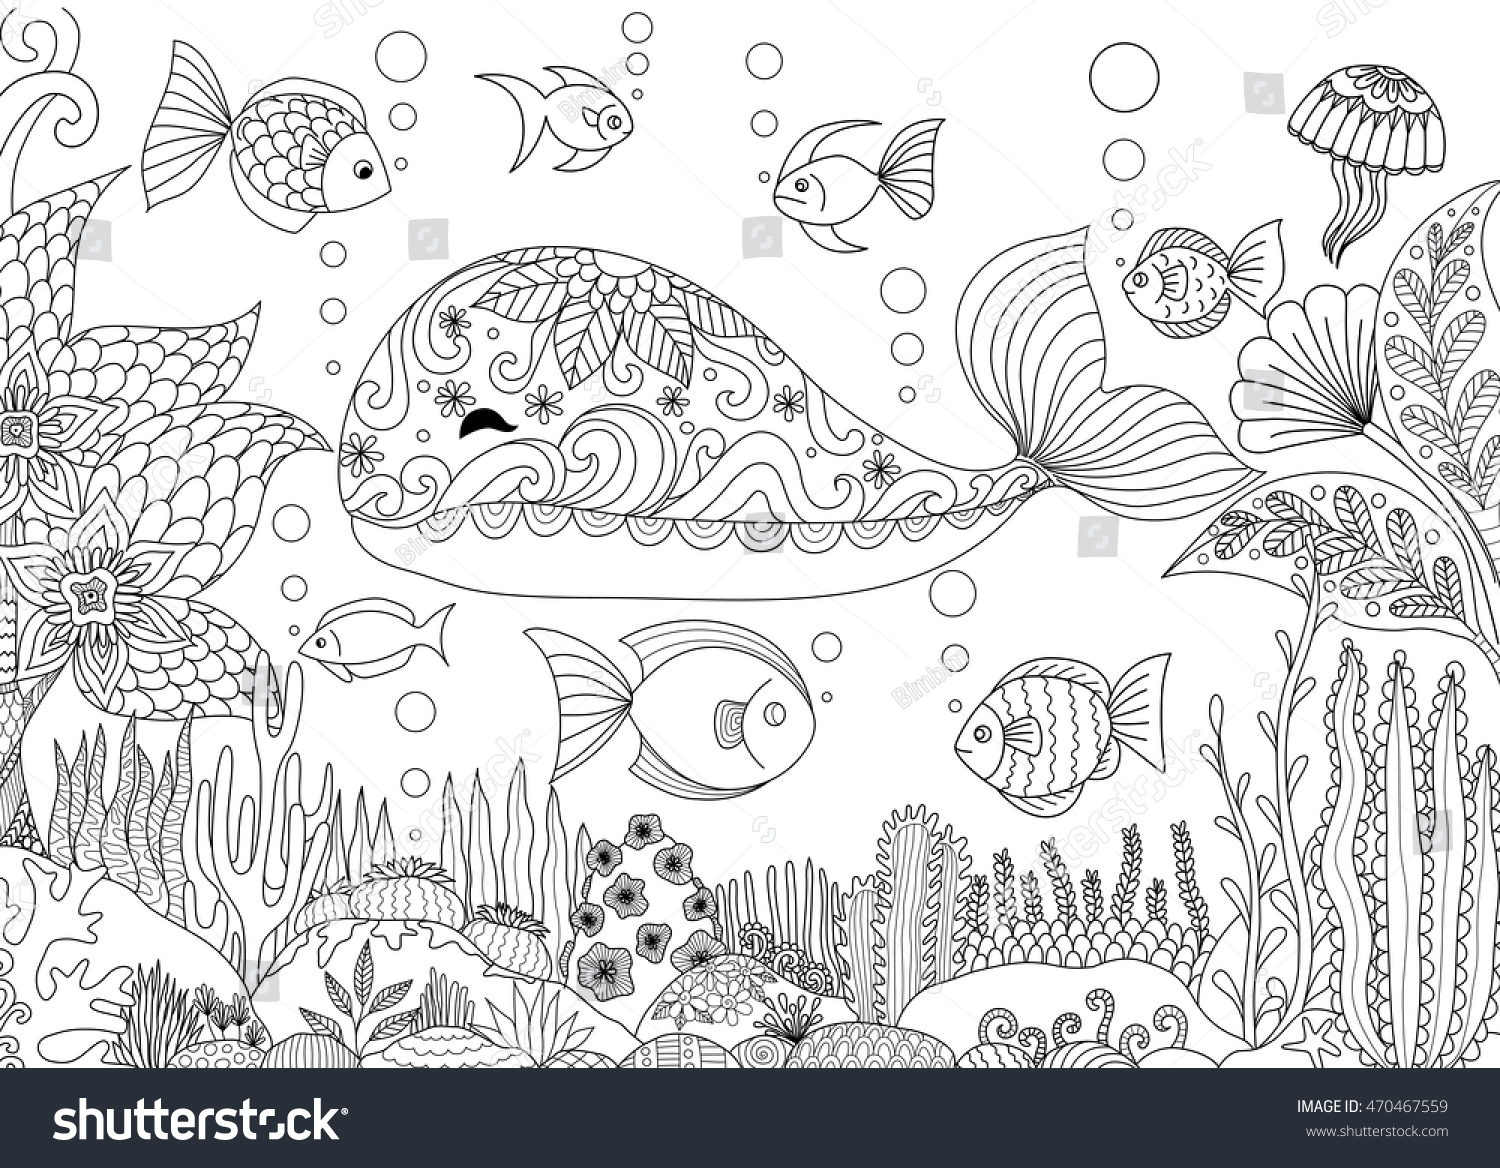 Under the sea coloring book for adults - Doodles Design Of A Little Whale Under The Sea With Beautiful Corals For Adult Coloring Book